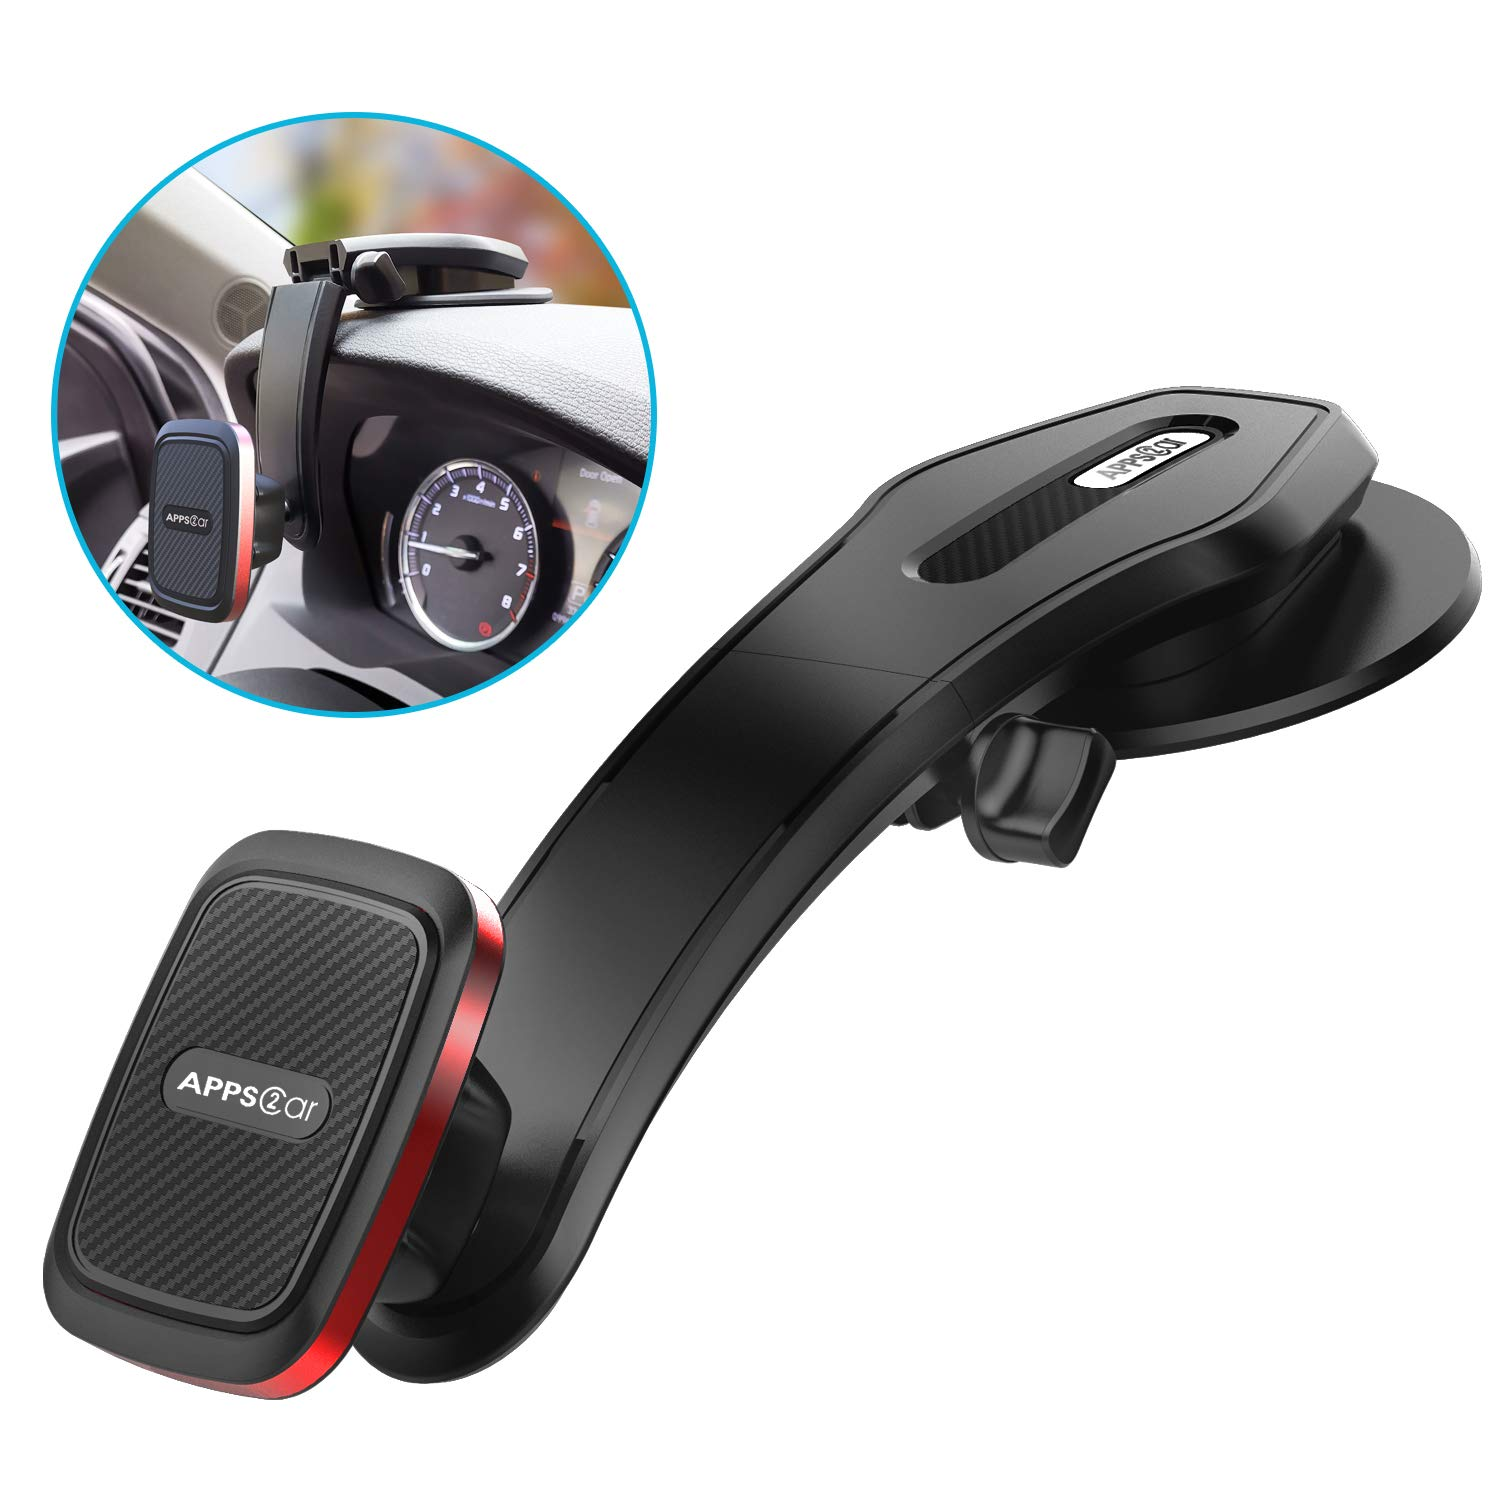 Universal Adjustable 6 Strong Magnets Suction Cup Car Phone Mount Holder Dashboard with Super Sticky